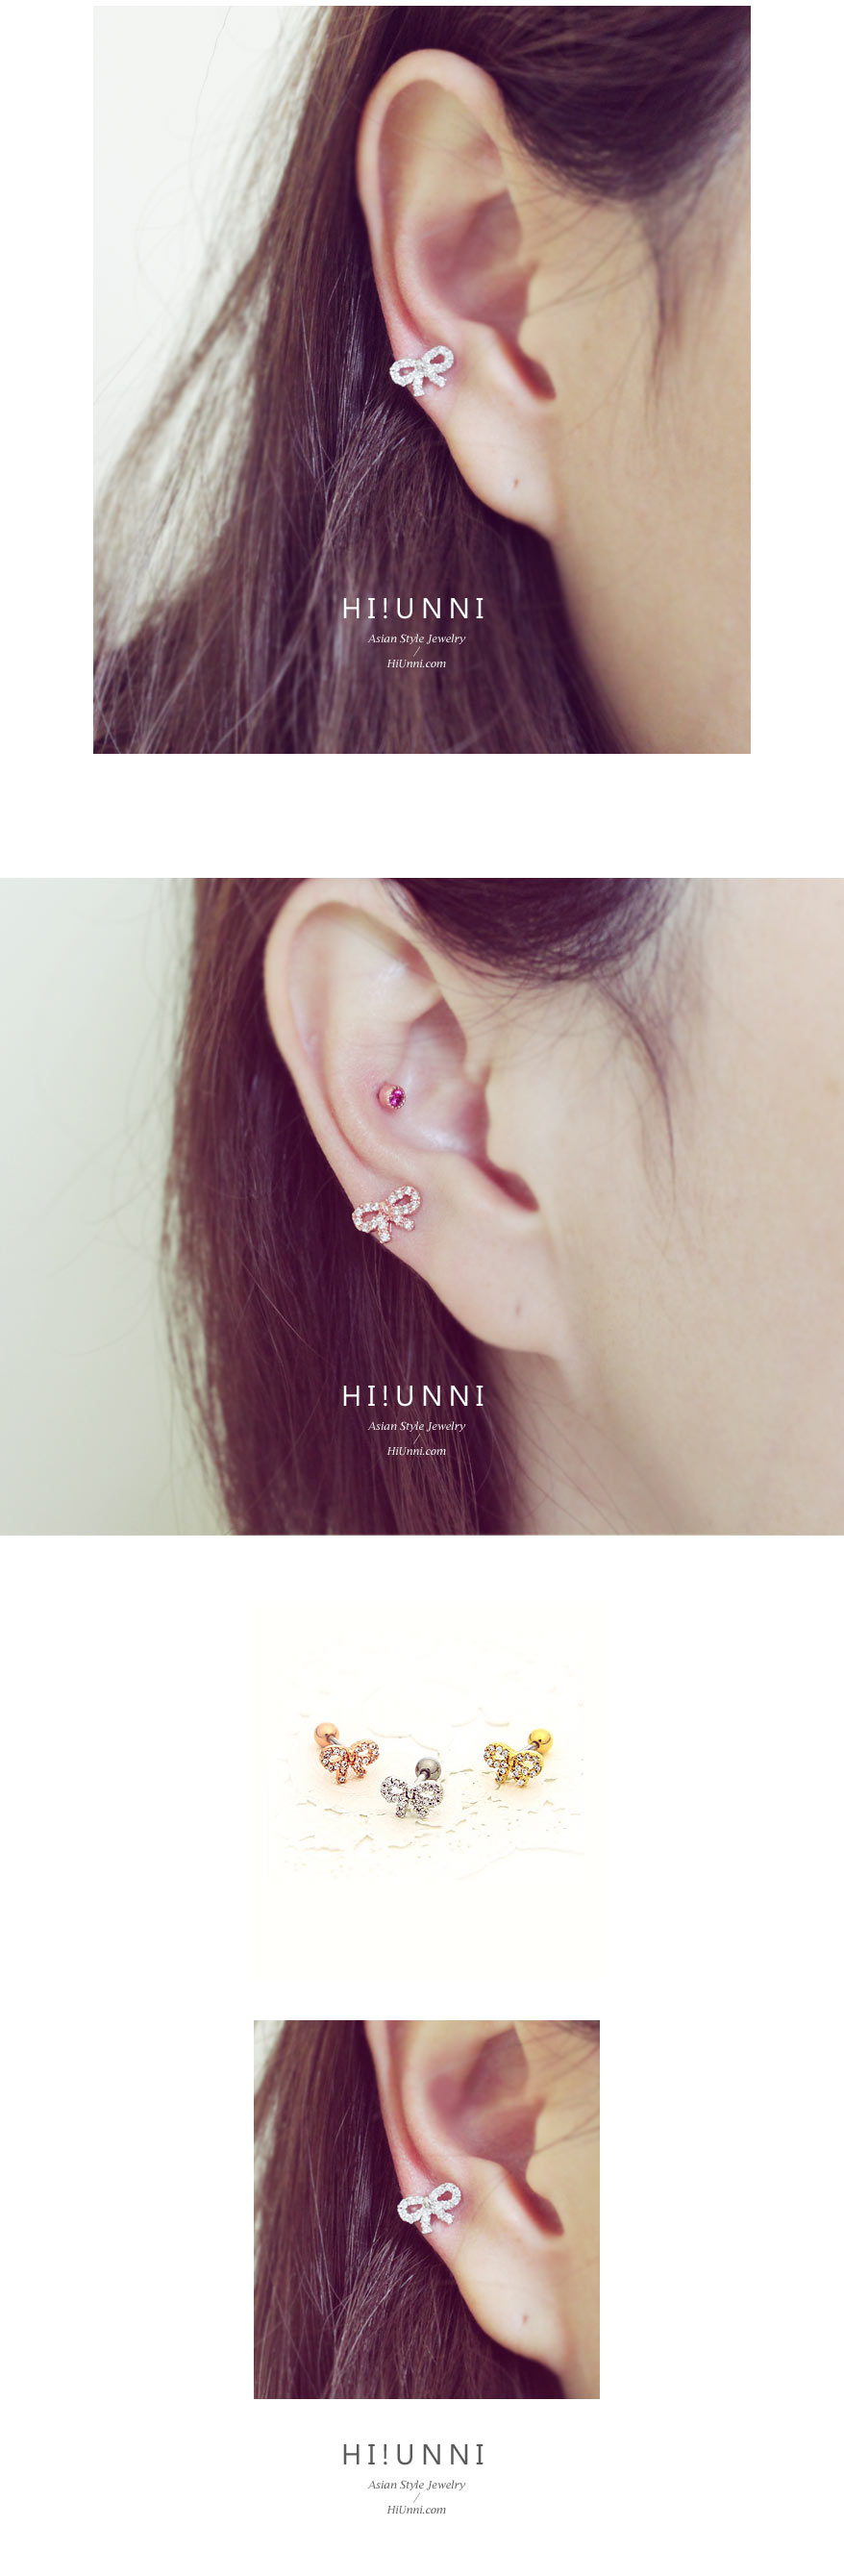 ear_studs_piercing_cartilage_earrings_16g_316l_surgical_korean_asian_style_jewelry_barbell_rose_gold_helix_conch_labret_tragus_bow_tie_ribbon_4